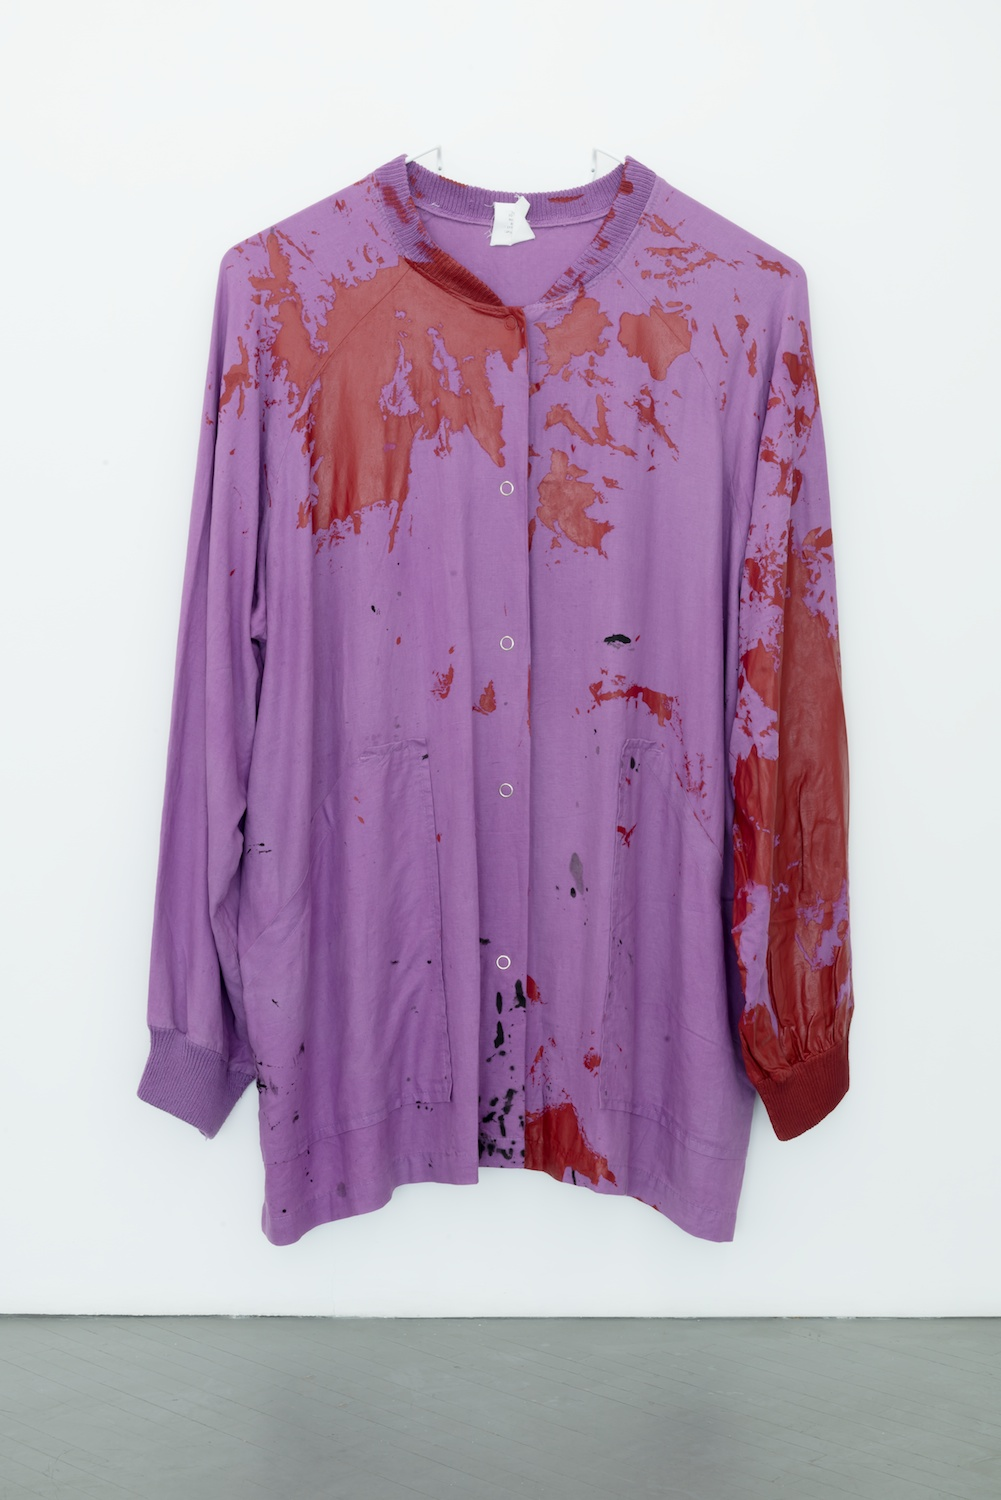 Amanda Ross-Ho  UNTITLED SMOCK (ACCIDENT)  2013 Dyed linen, hand knit linen, cotton/acrylic blend, heat transfer, thread, latex paint, acrylic paint, prong snap buttons 85h x 50w in ARH074